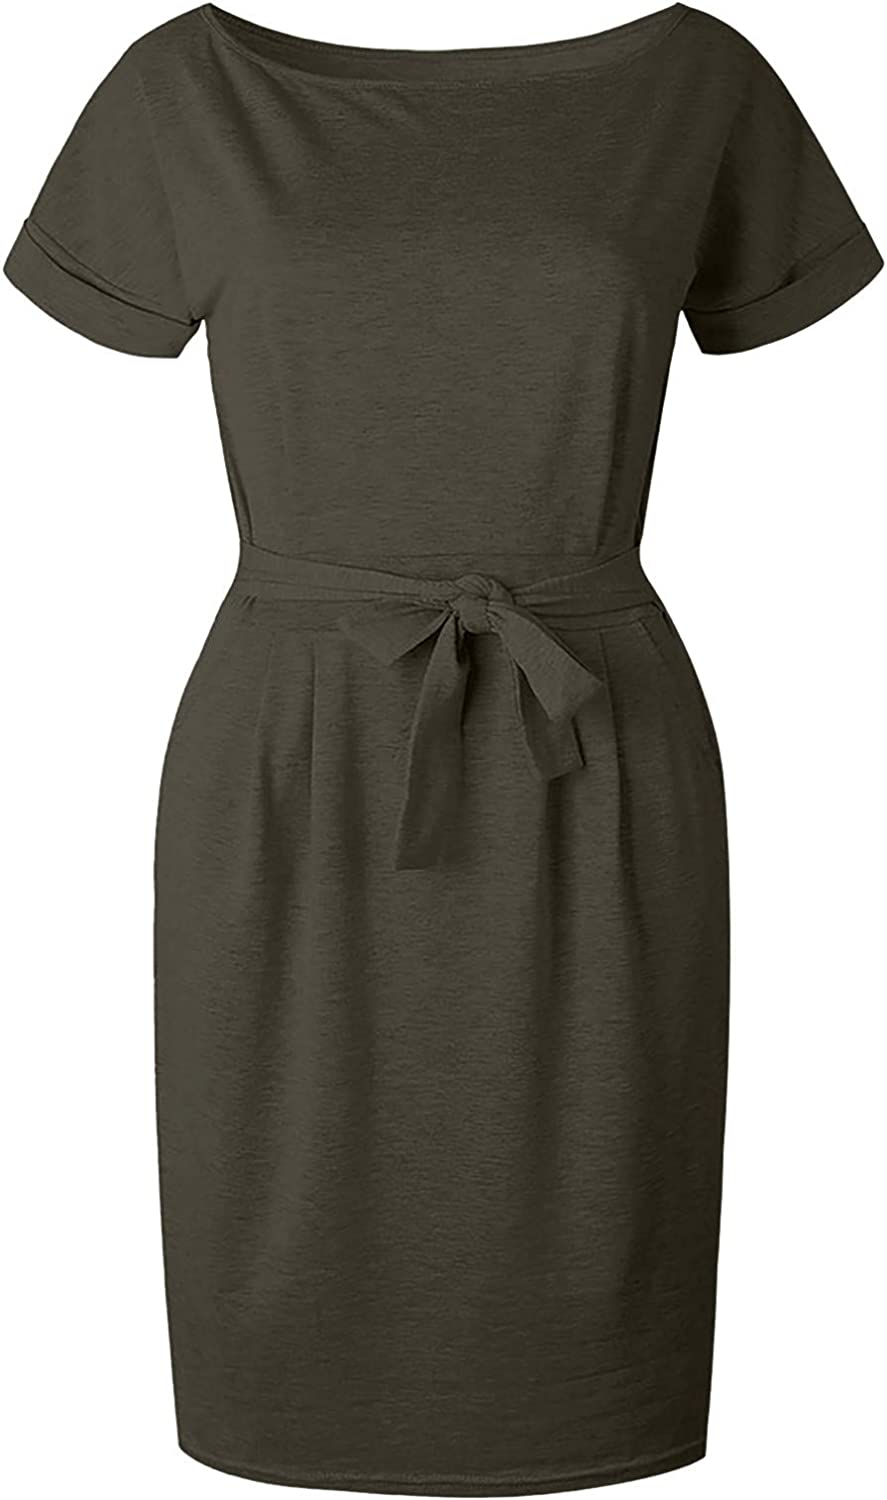 XCeihe Women Casual Dress with Pockets for Summer O-Neck Vneck Short Sleeve Belted Knotted Fashion Slim Midi Dresses